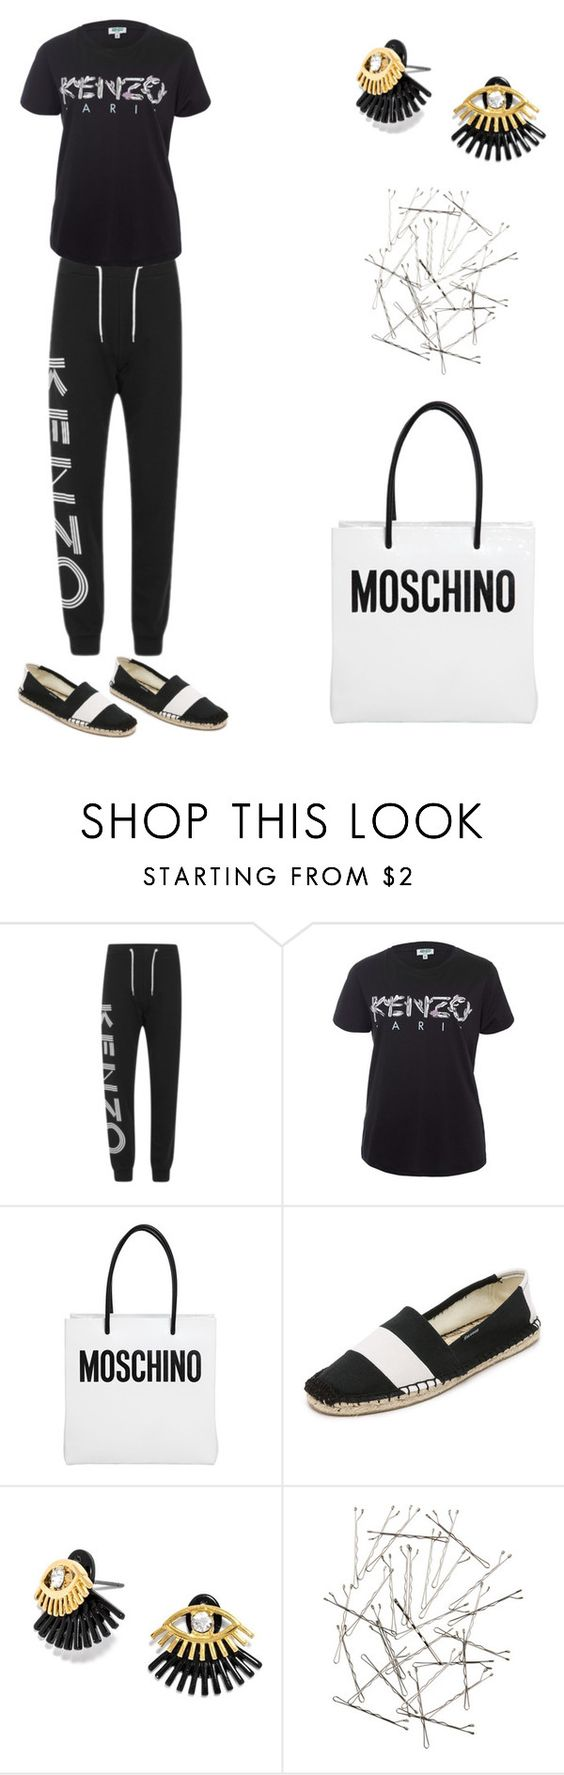 """""""Grace"""" by zoechengrace ❤ liked on Polyvore featuring Kenzo, Moschino, Soludos, BaubleBar and Monki"""